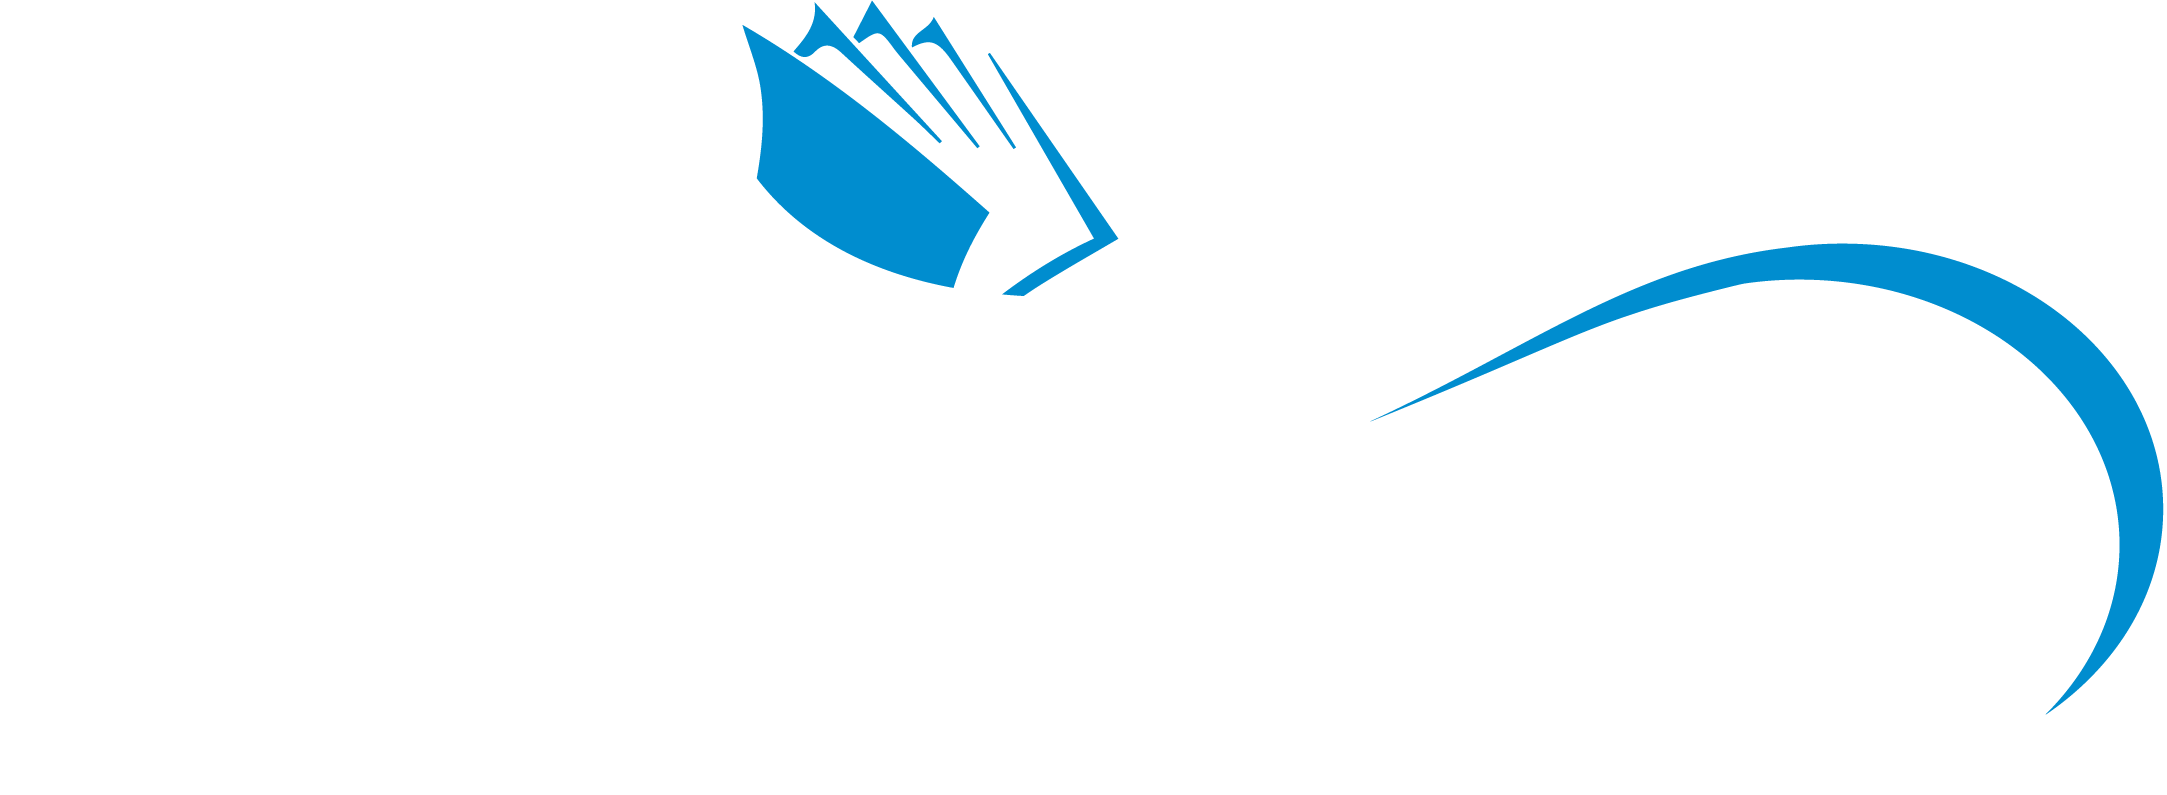 Second Wave - Pantone - Full Logo - White and Blue.png